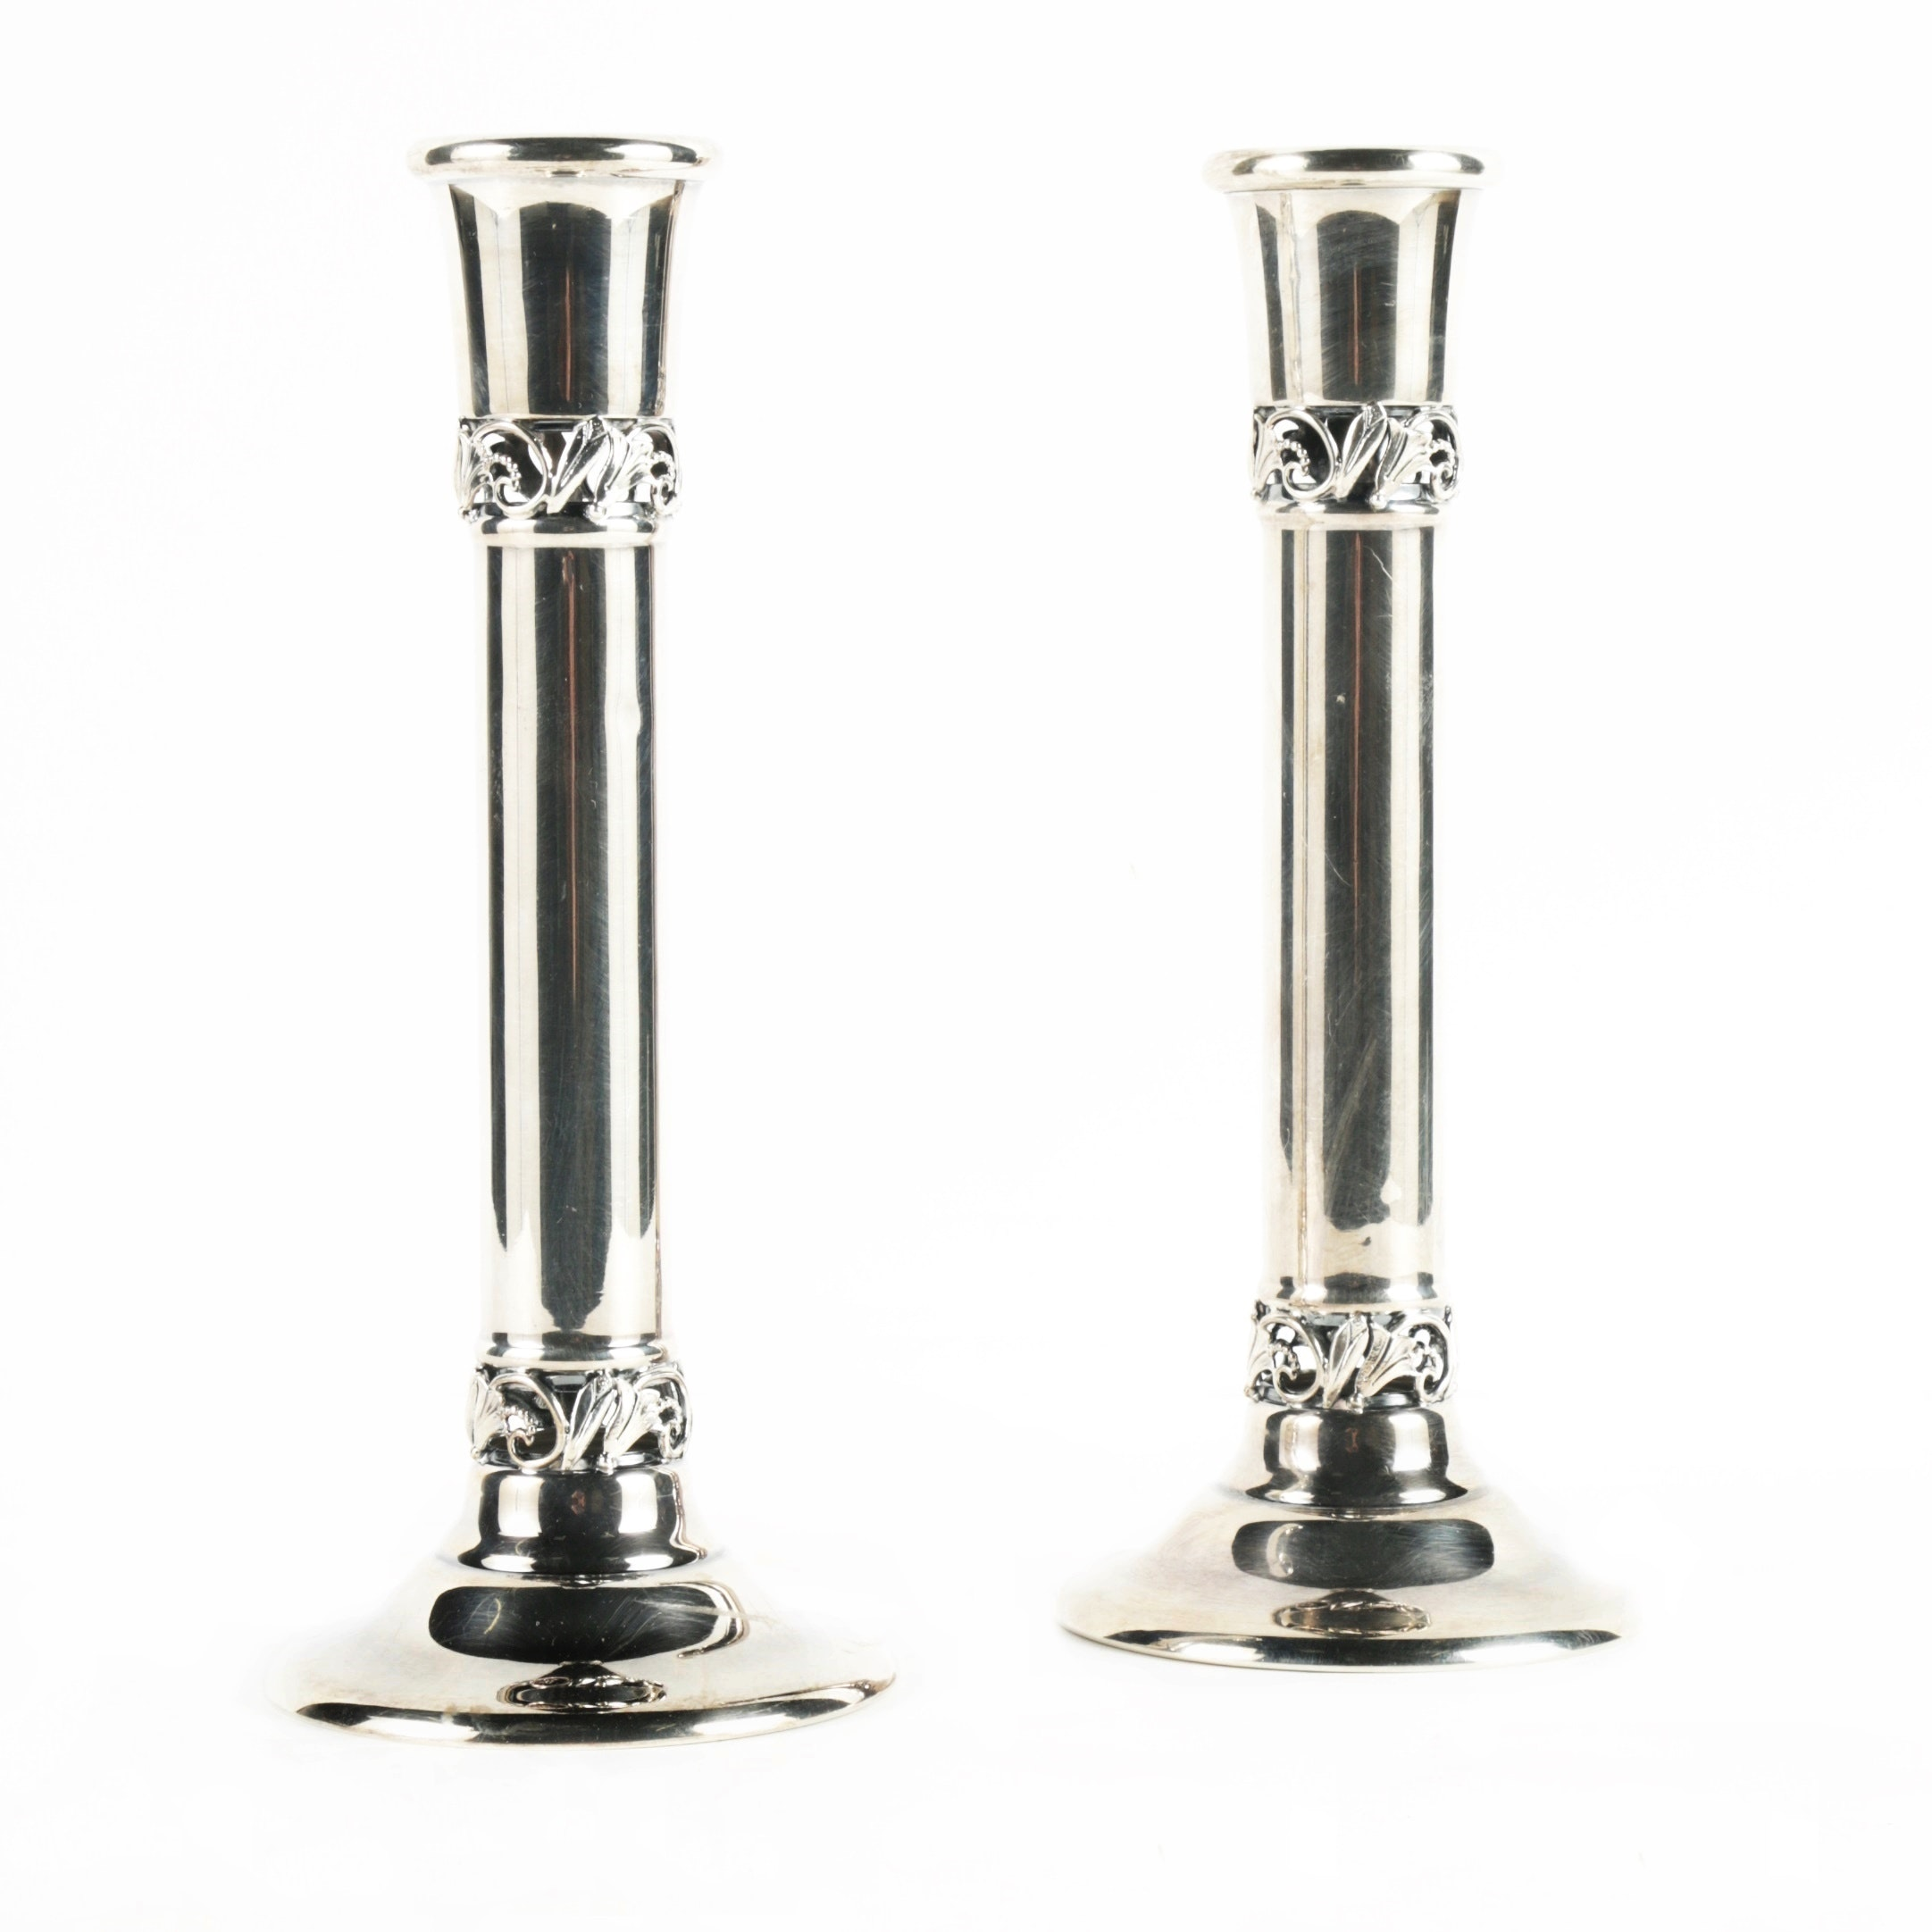 Pair of Sterling Silver Candlesticks with Pierced Floral Bands